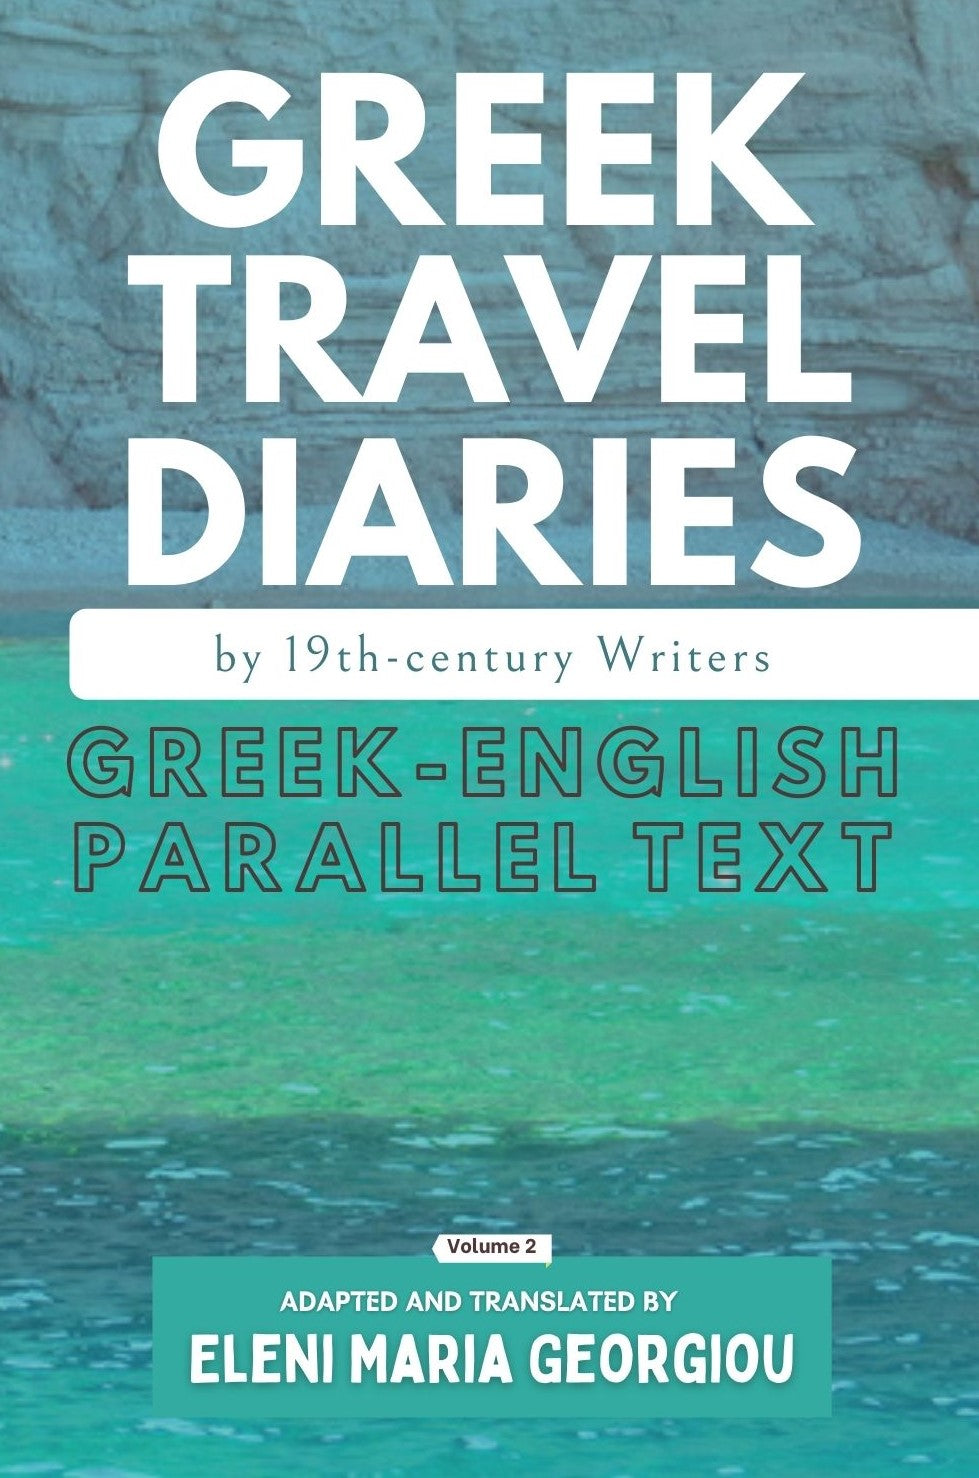 Greek Travel Diaries by 19th-century Writers: Greek-English Parallel Text Volume 2